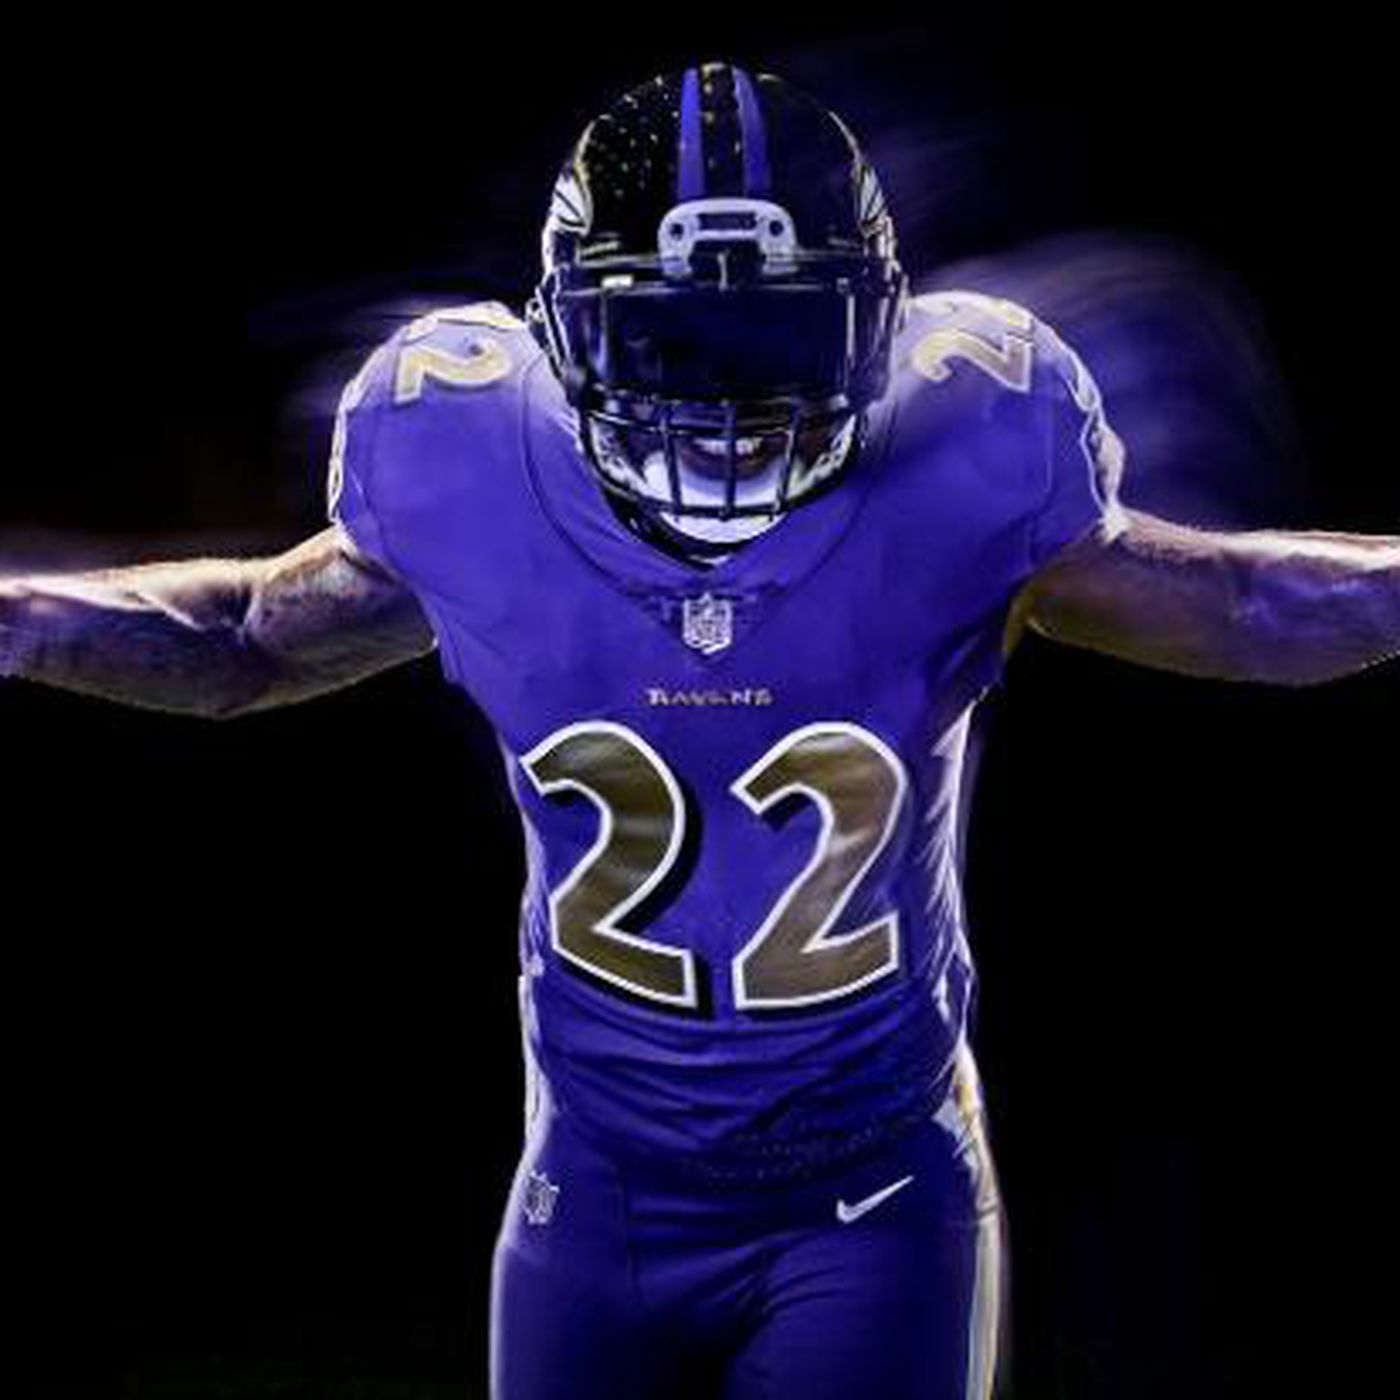 Color Rush Jerseys are here and they look awesome